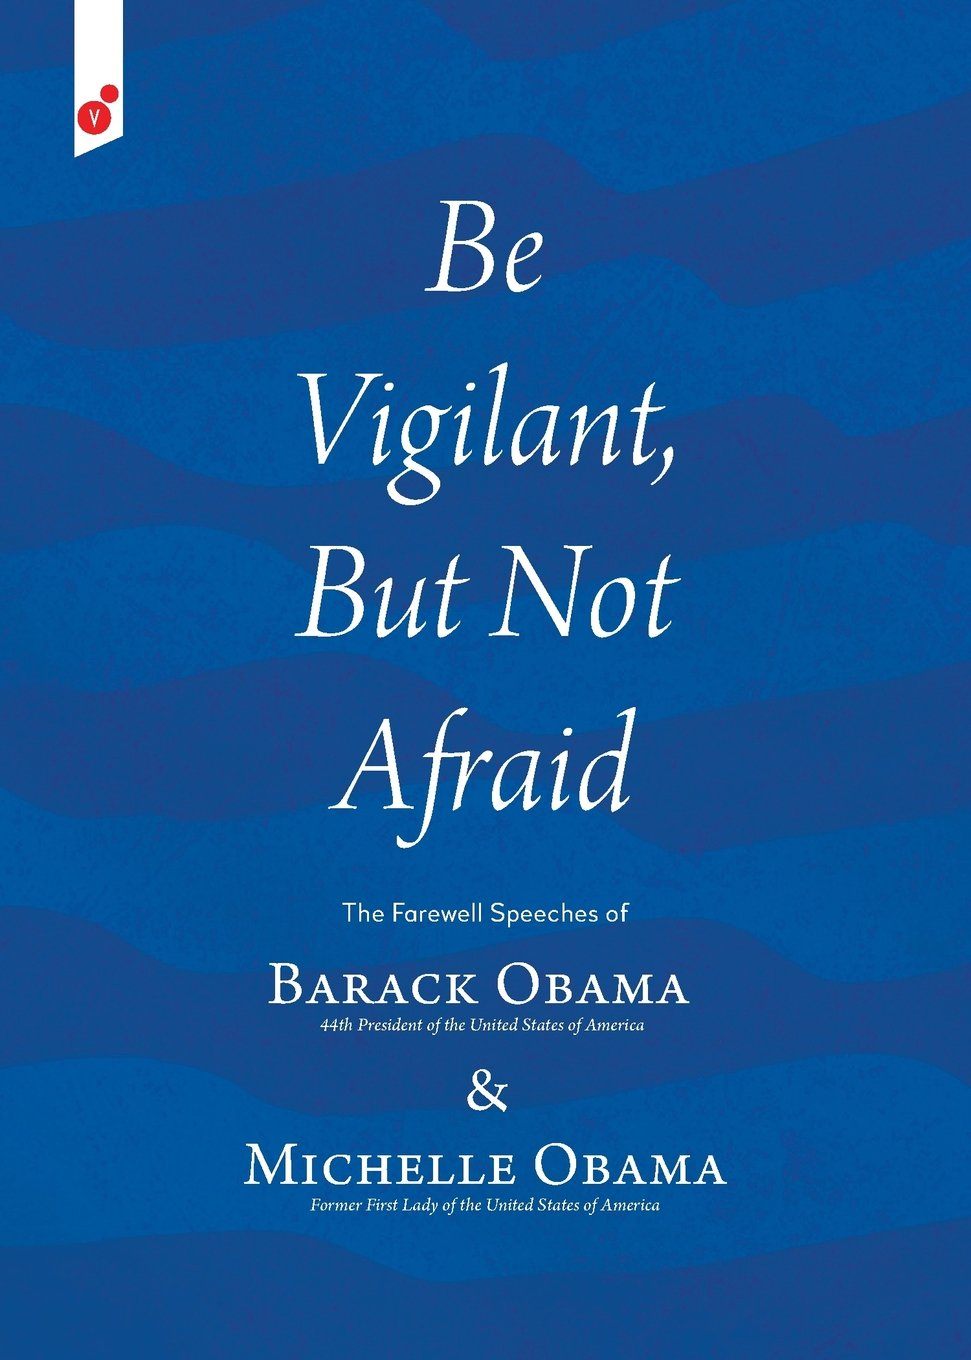 Be Vigilant But Not Afraid: The Farewell Speeches of Barack Obama and Michelle Obama ePub fb2 book